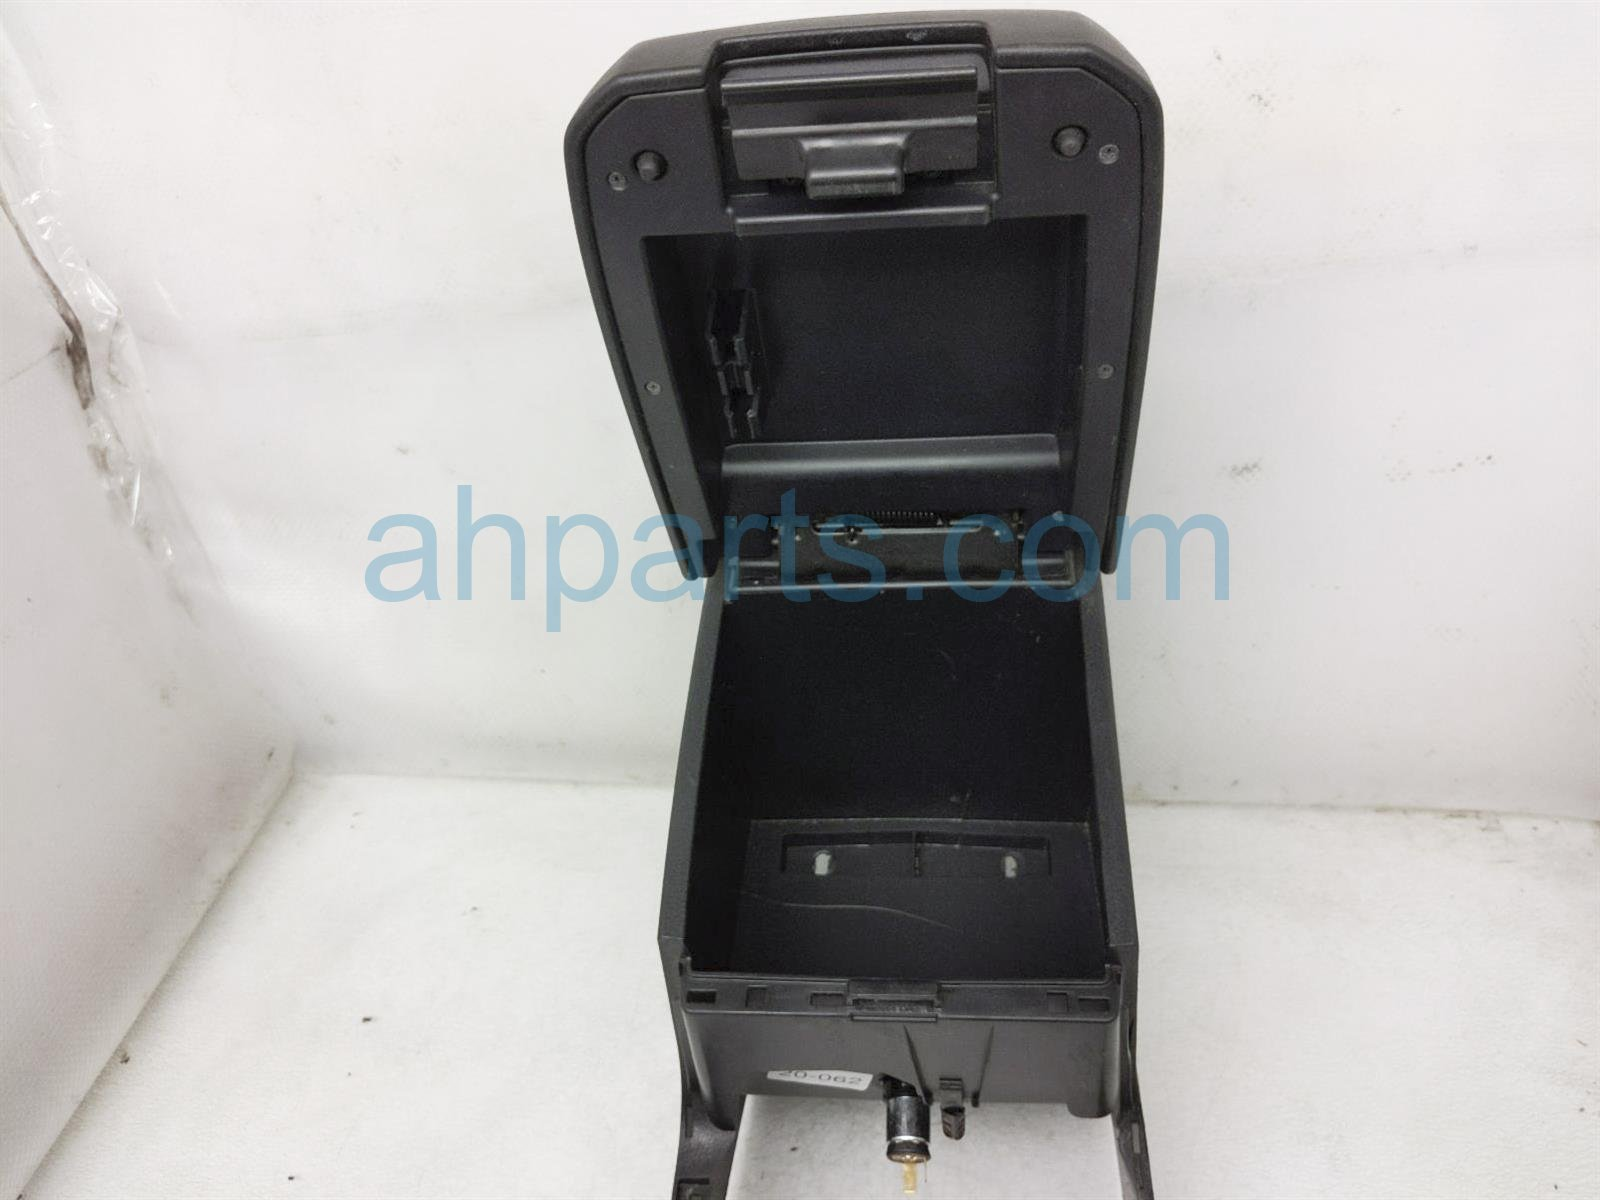 2017 Toyota Tacoma Center Console Armrest   Black 58910 04030 C0 Replacement